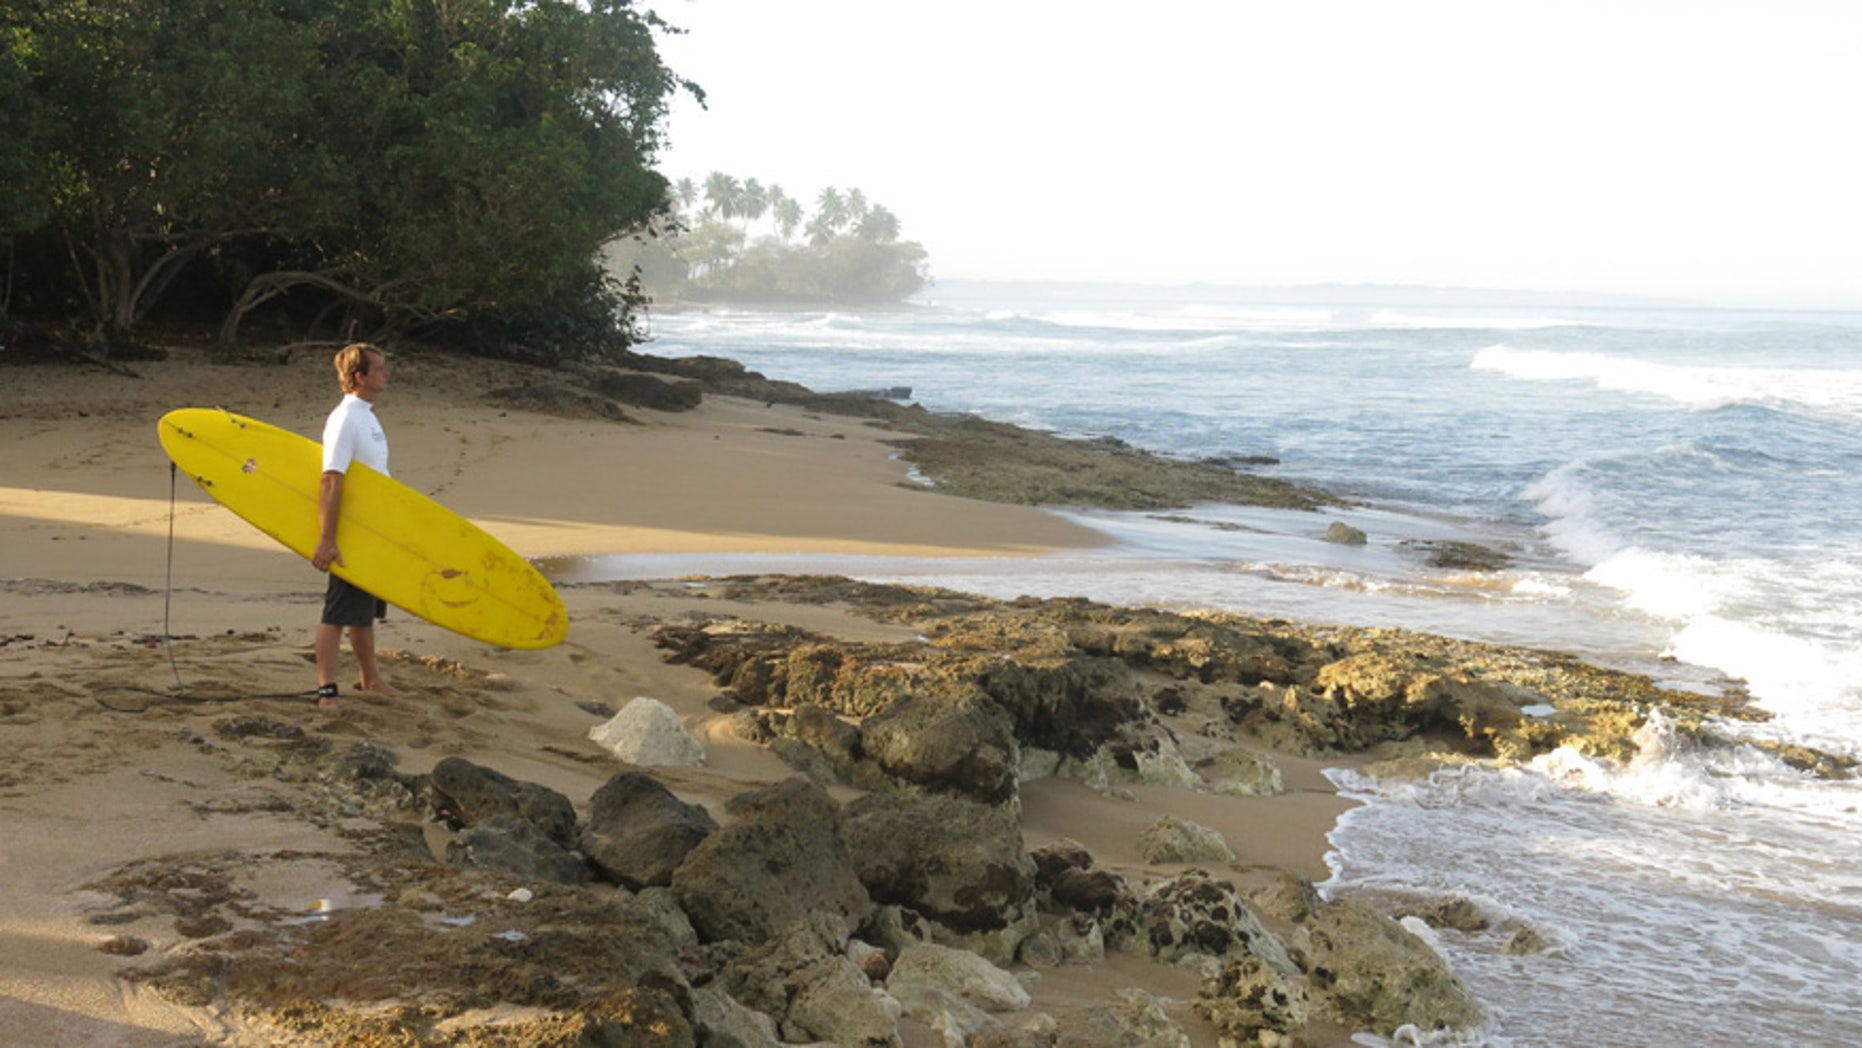 A surfer studies the waves at Wilderness Beach in Aguadilla, Puerto Rico.